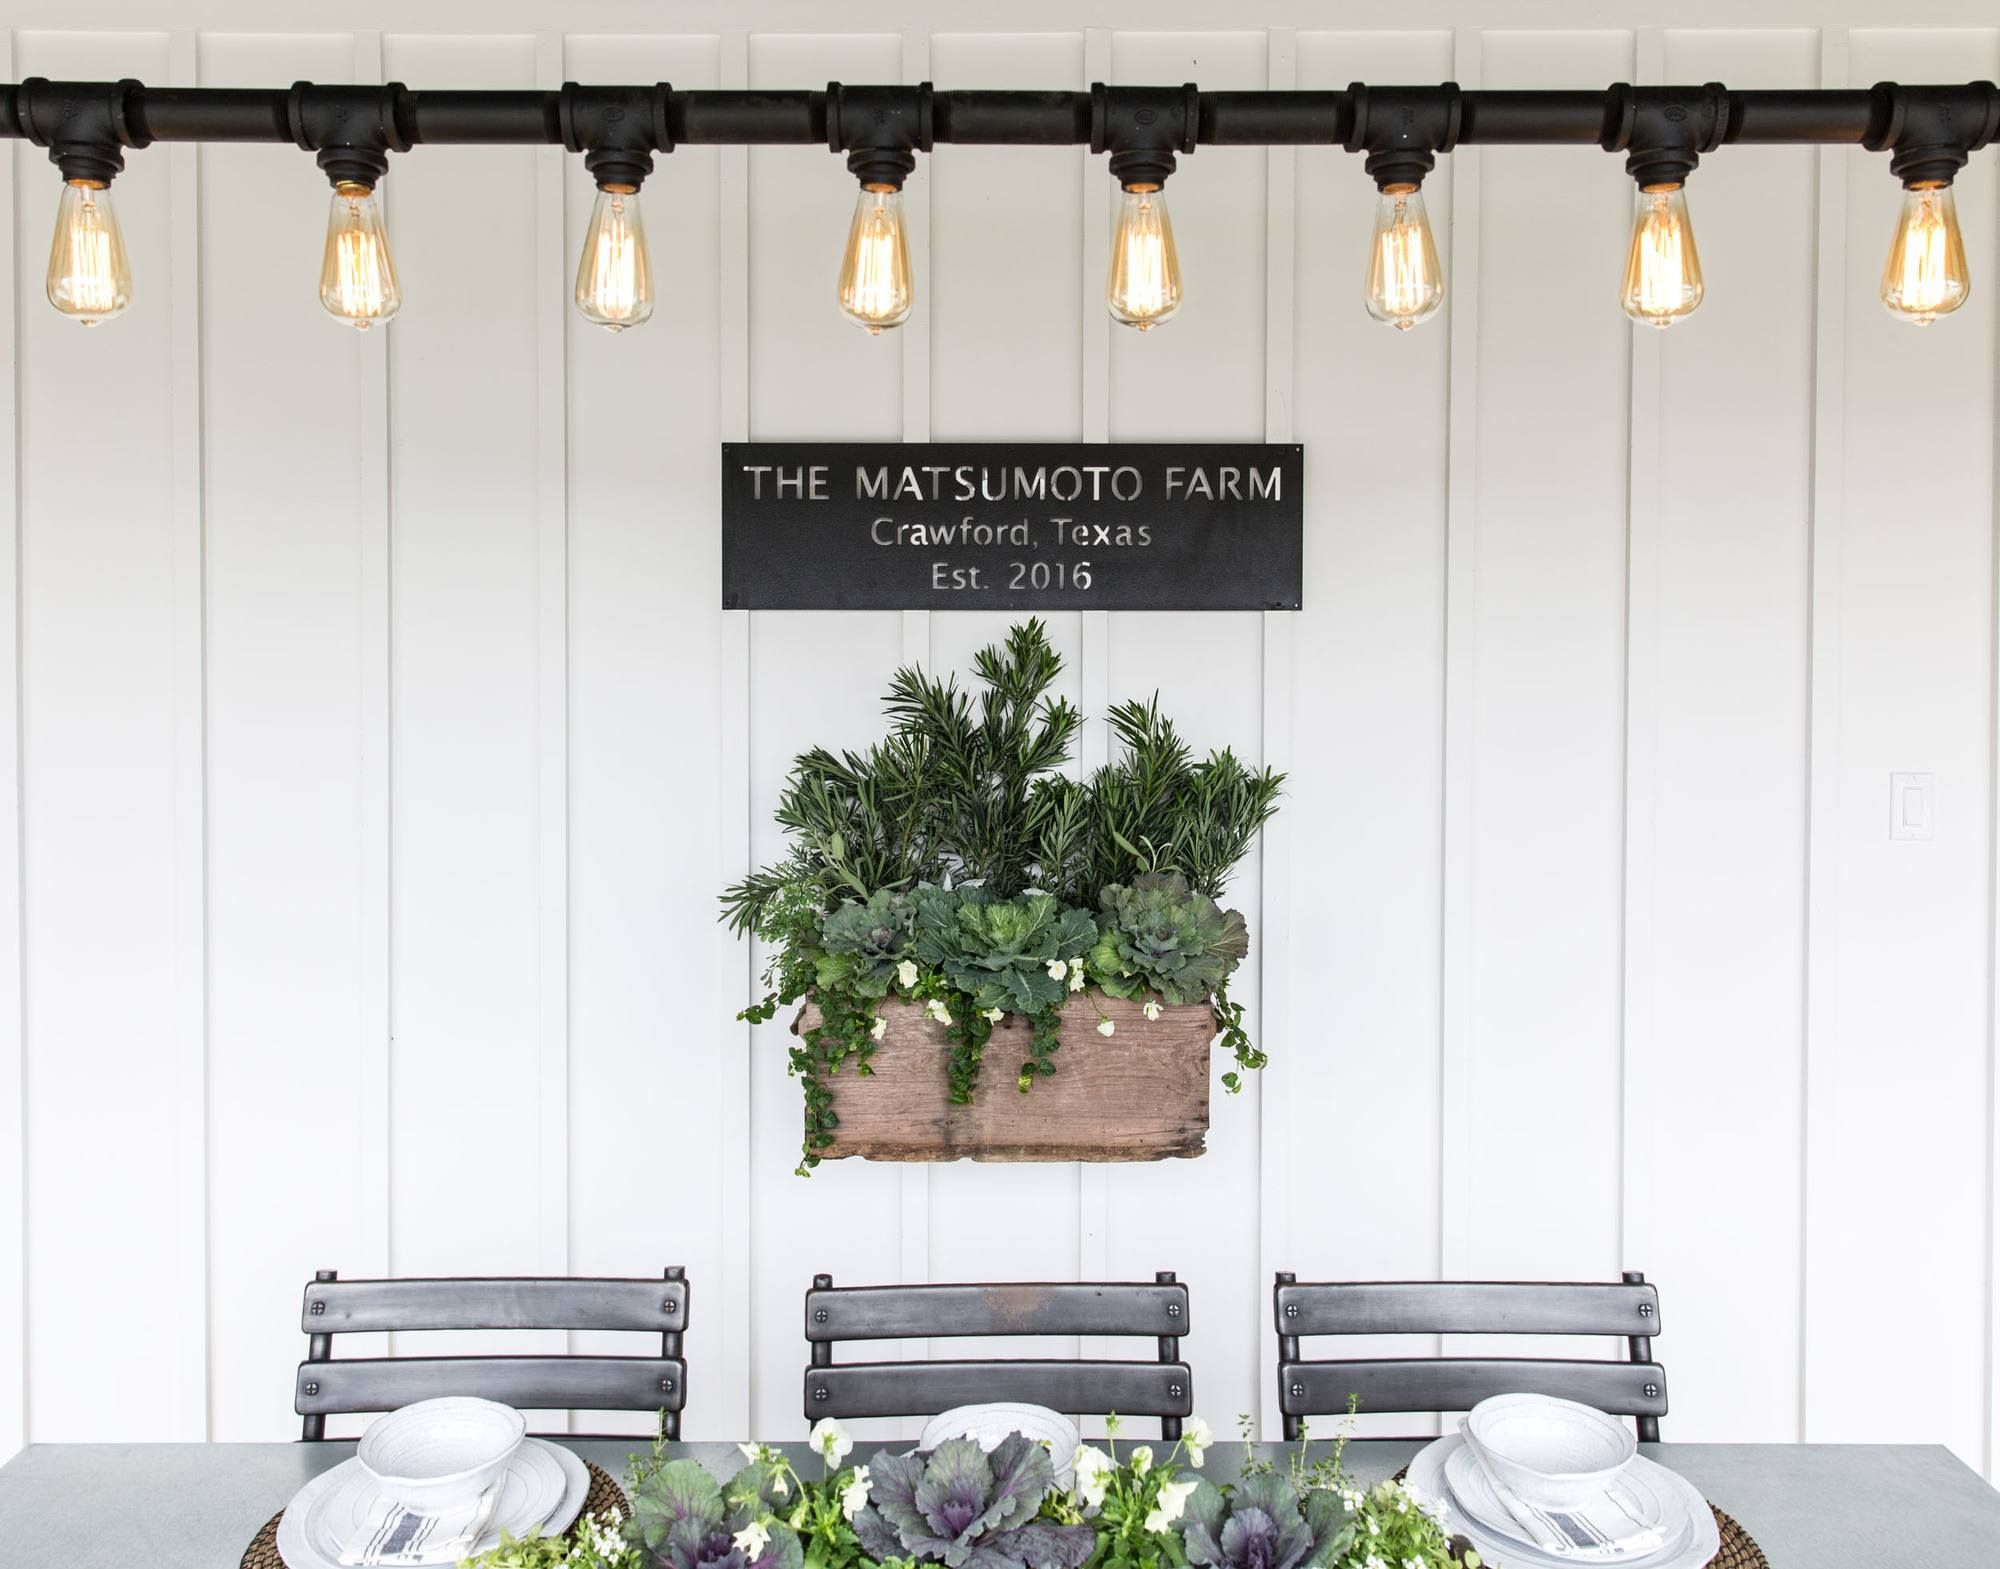 Fixer upper outdoor kitchen - Fixer Upper Season 4 Episode 16 The Little Shack On The Prairie Chip And